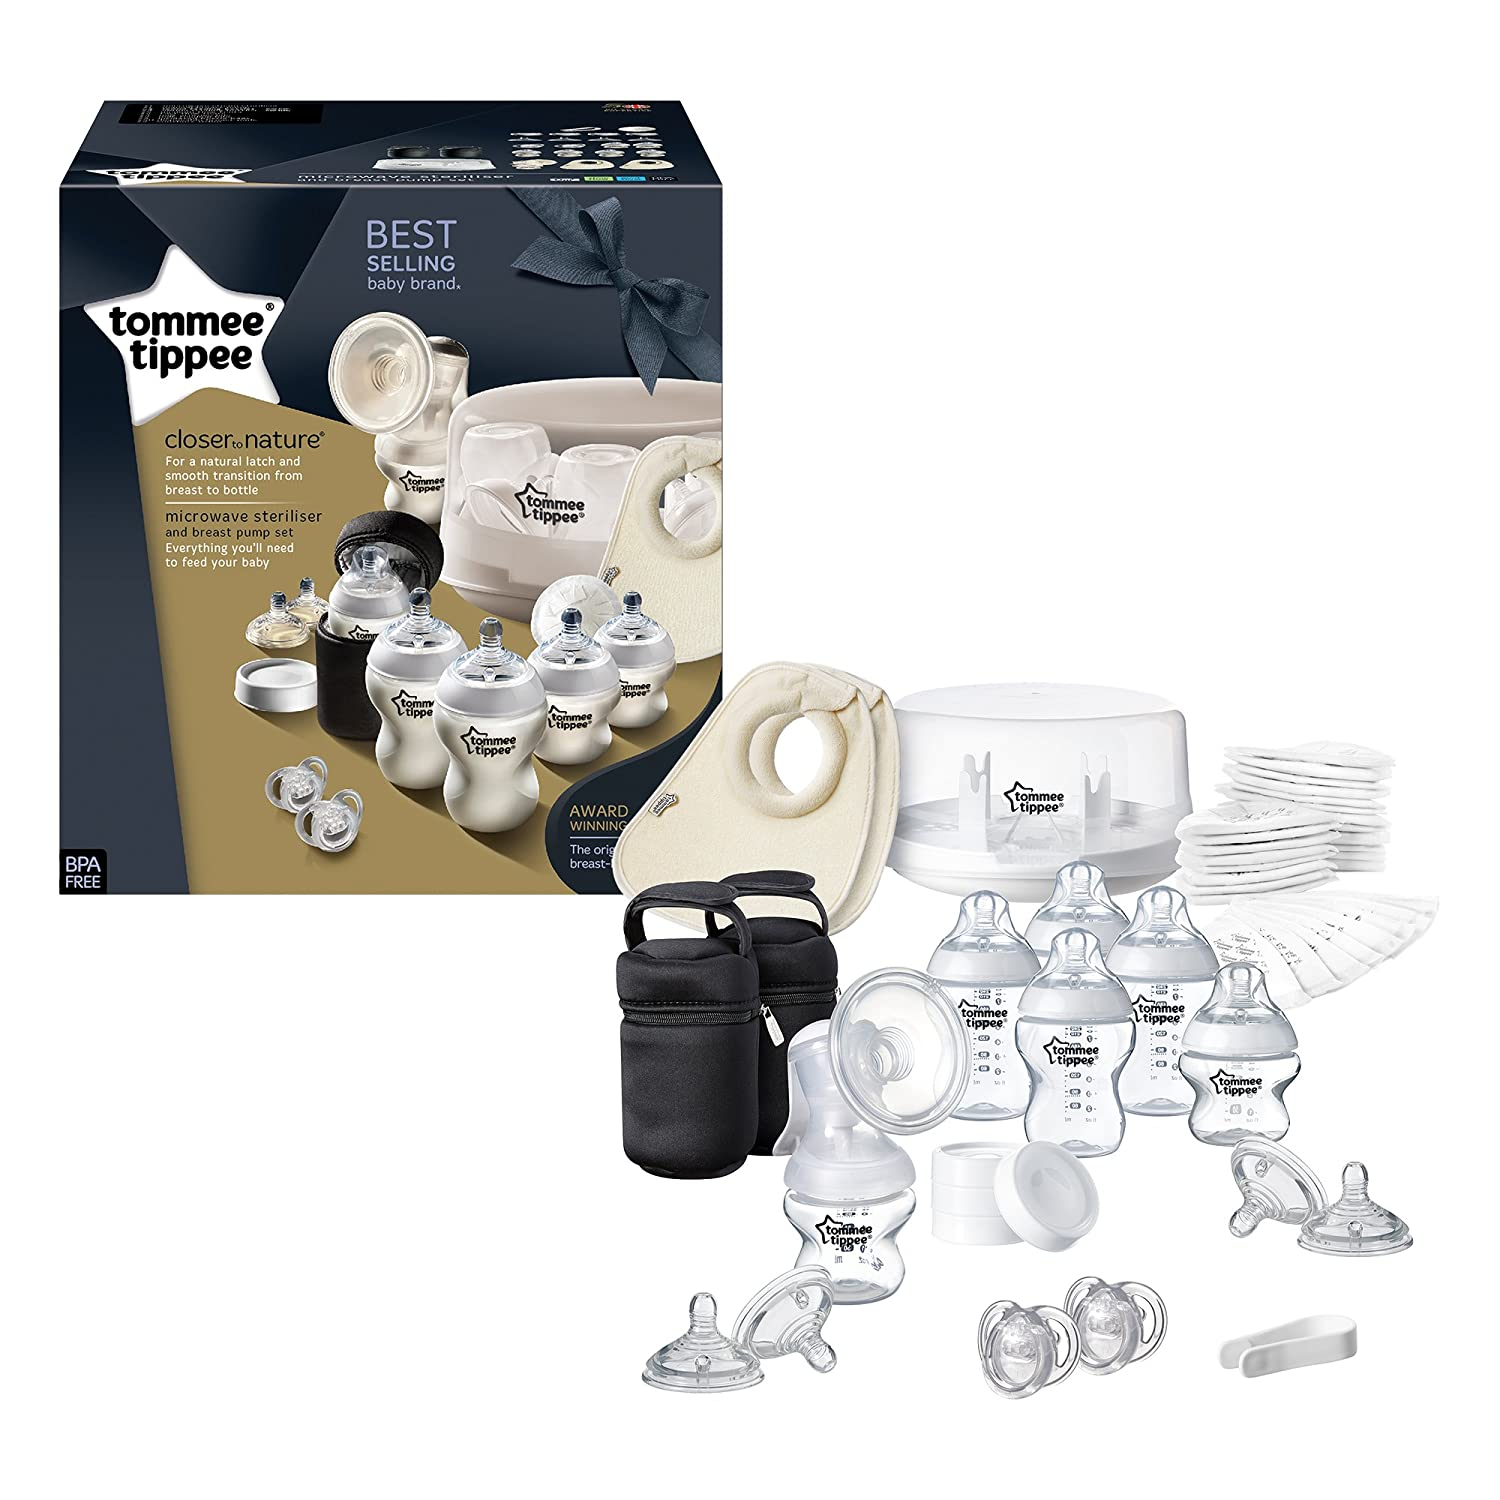 03f6b2f68 Tommee Tippee Closer to Nature Microwave Steriliser and Breast Pump Set:  Amazon.co.uk: Baby